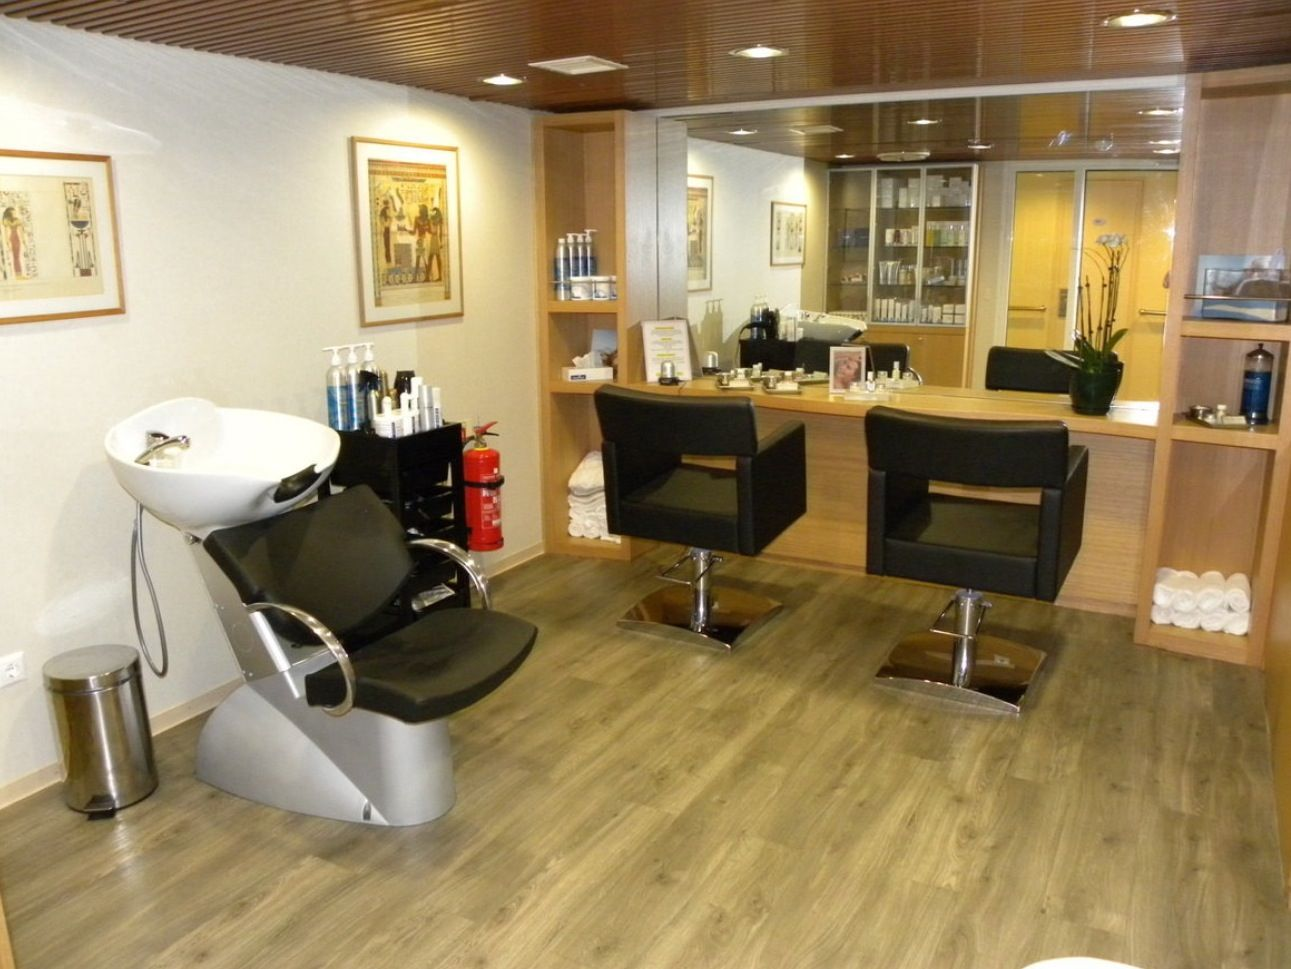 Small salon perfect want want want just for me for Hair salons designs ideas